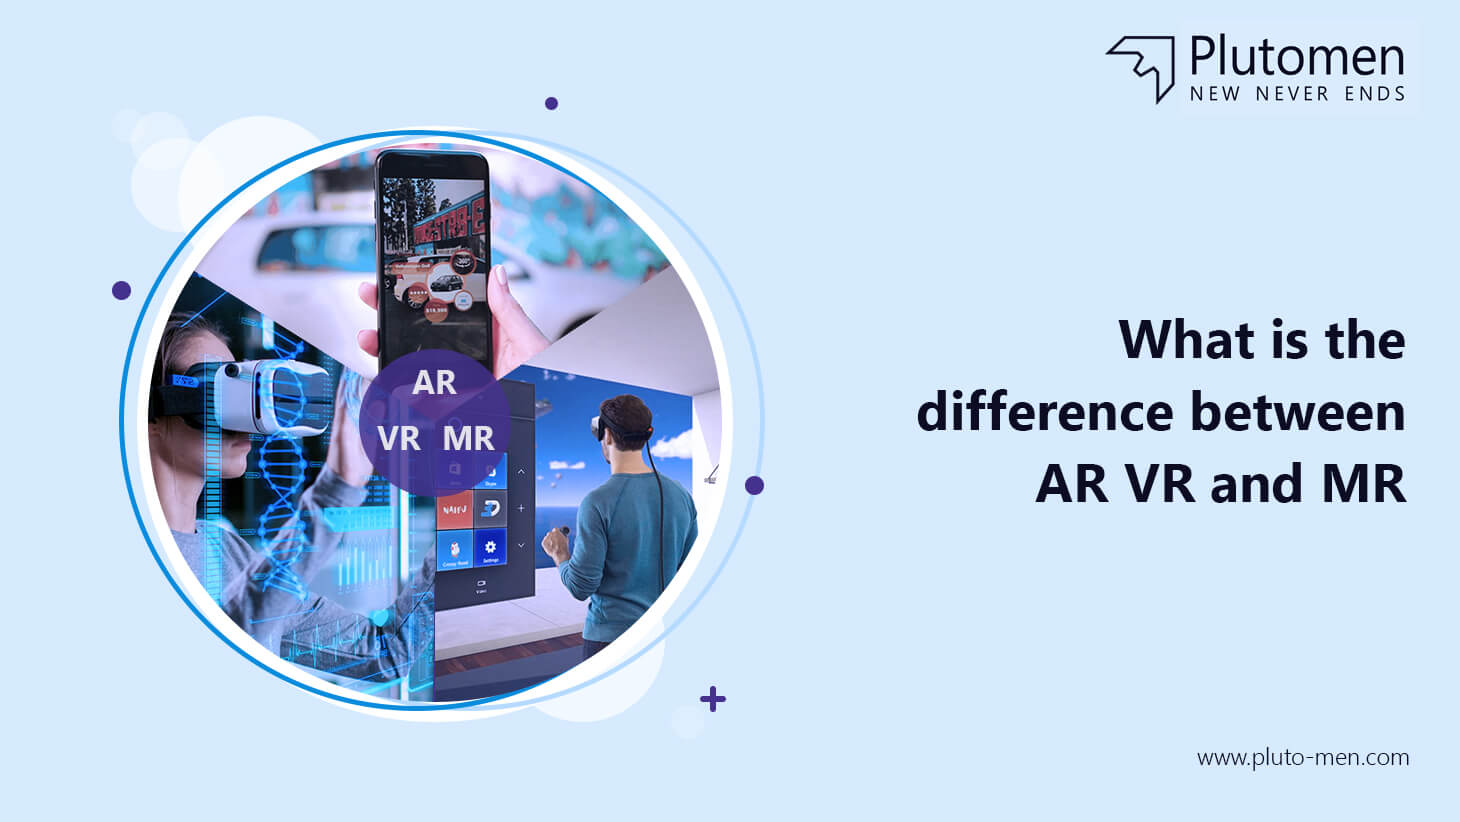 What is the difference between AR, VR and MR?